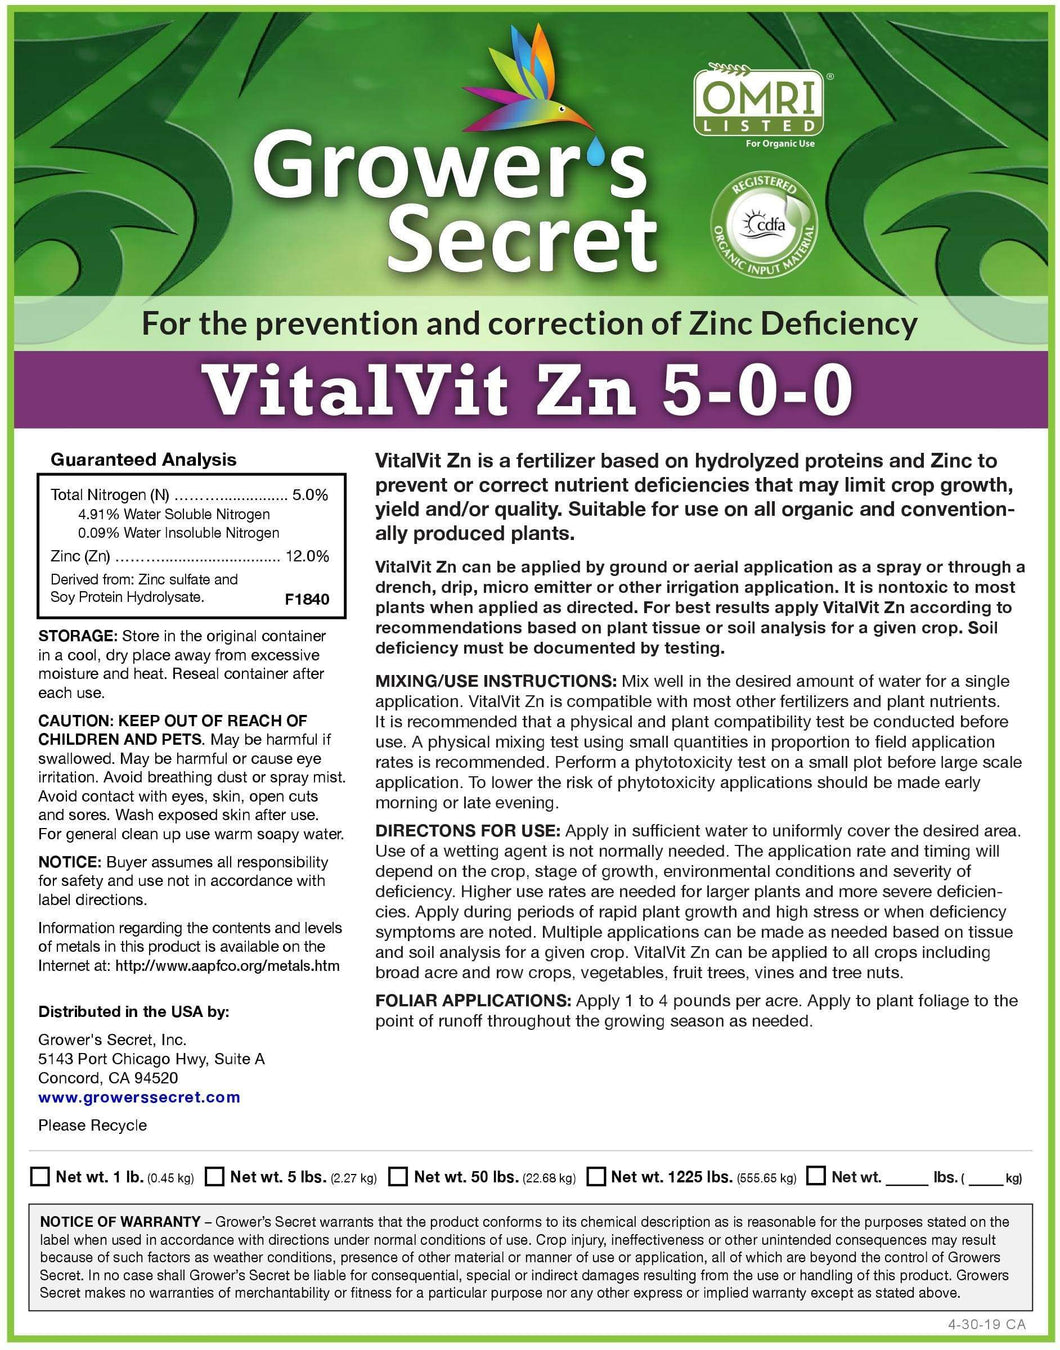 Growers Secret Grower's Secret VitalVit Zn 5-0-0 Zinc